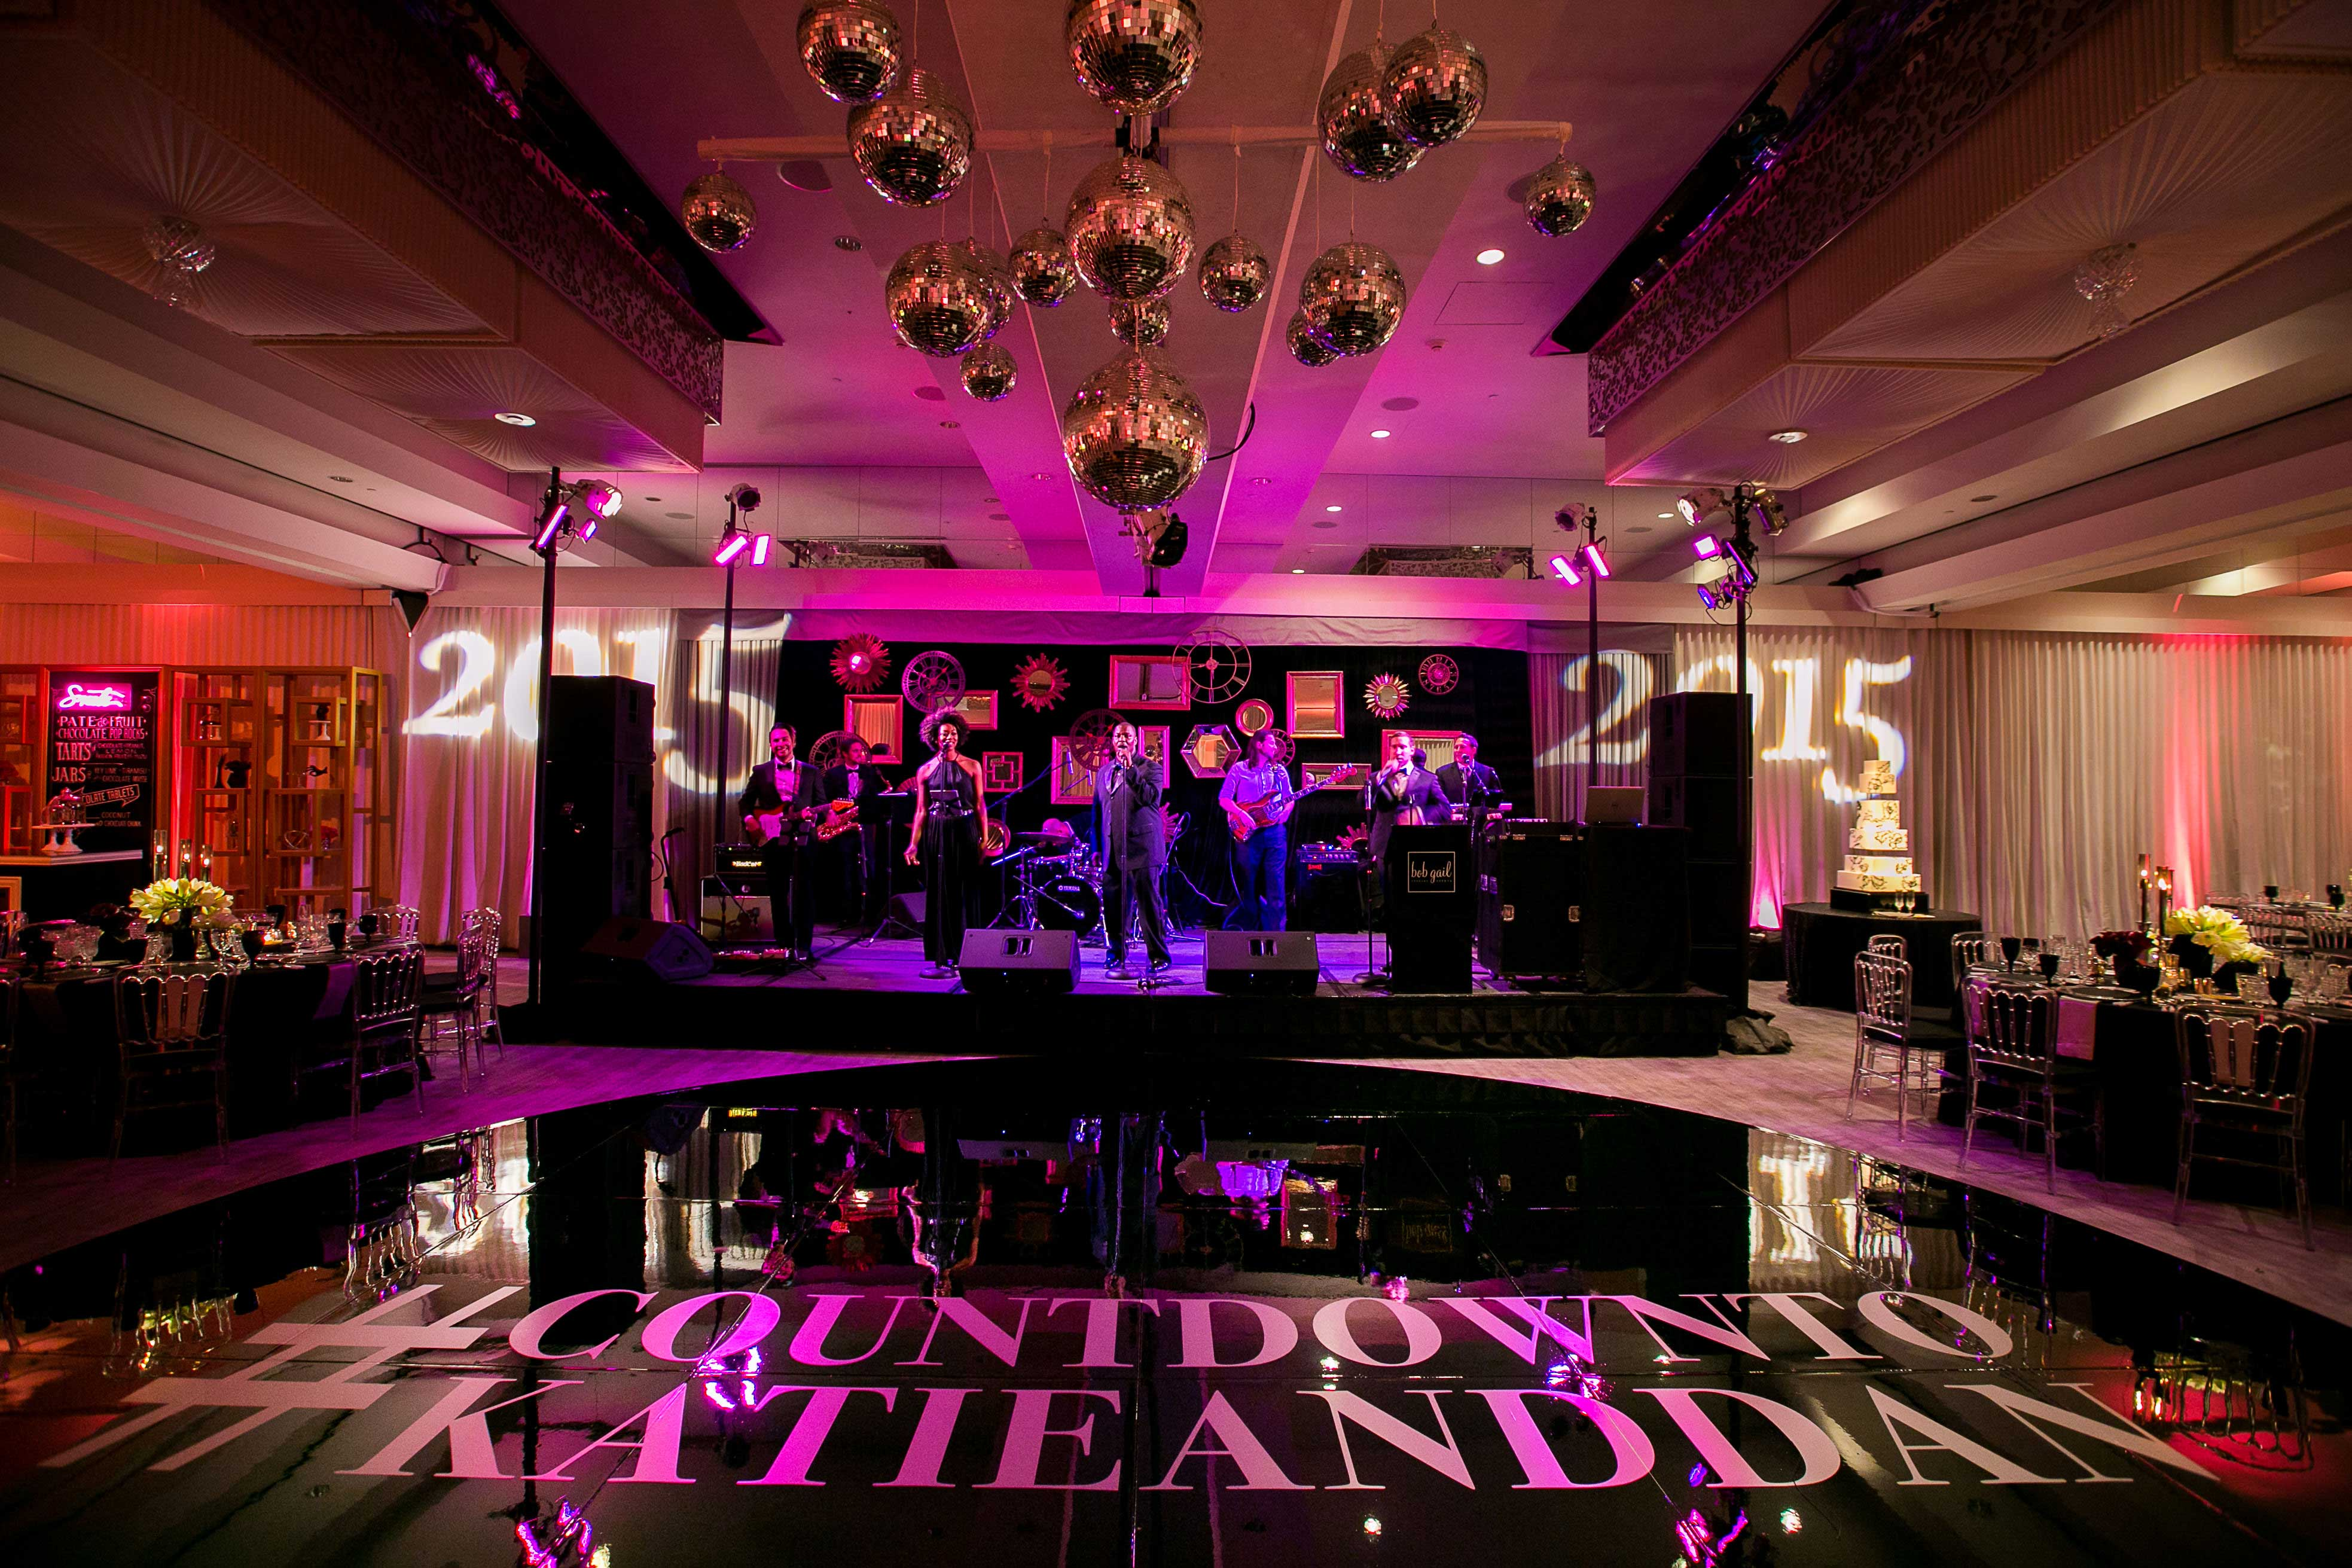 Vibrant fuchsia pink and black dance floor for New Year's Eve wedding reception live band stage